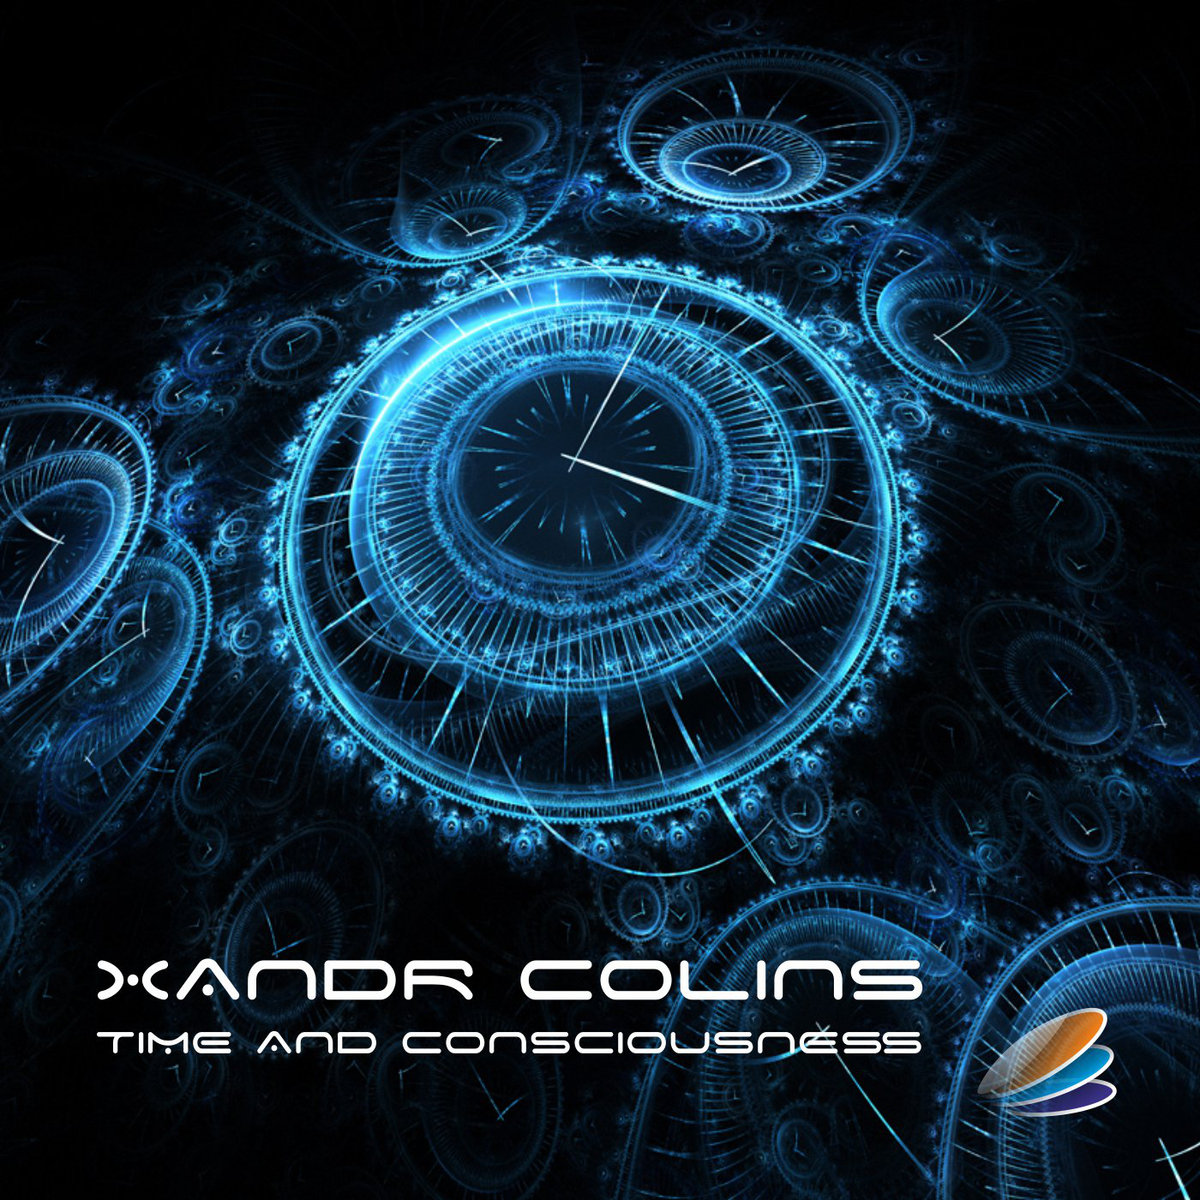 Xandr Colins - Time And Consciousness